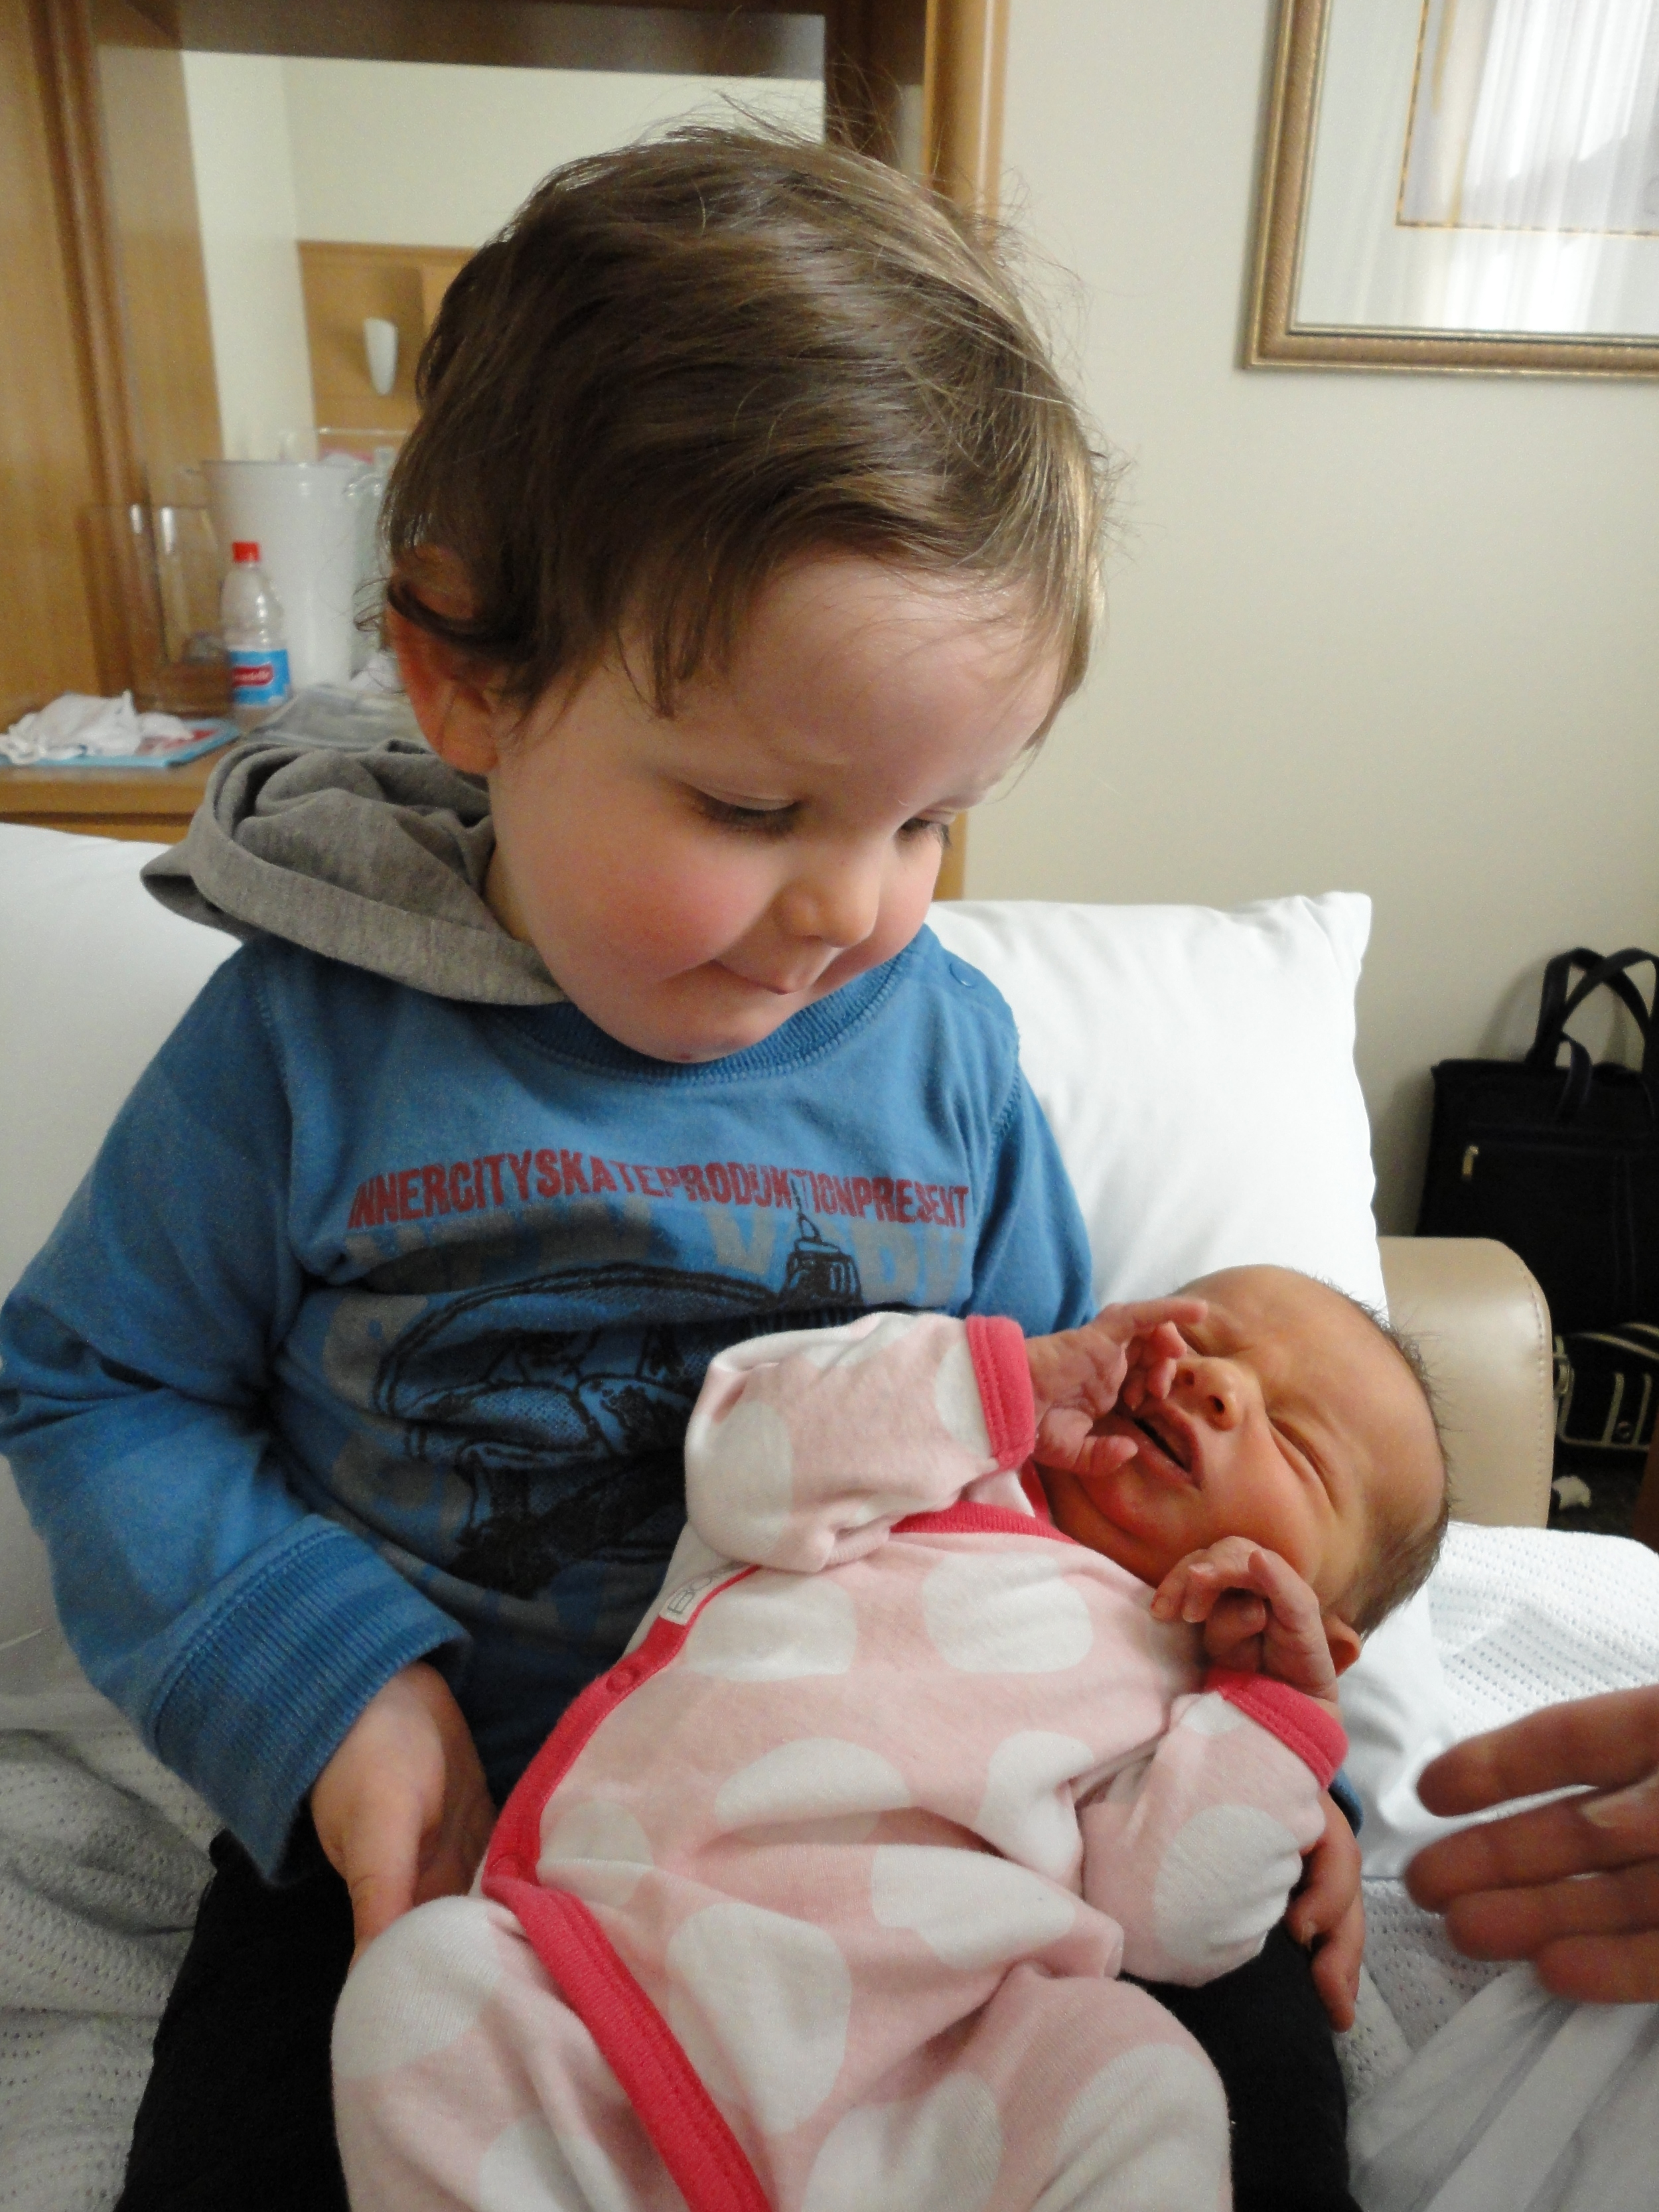 Jack meeting his little sister